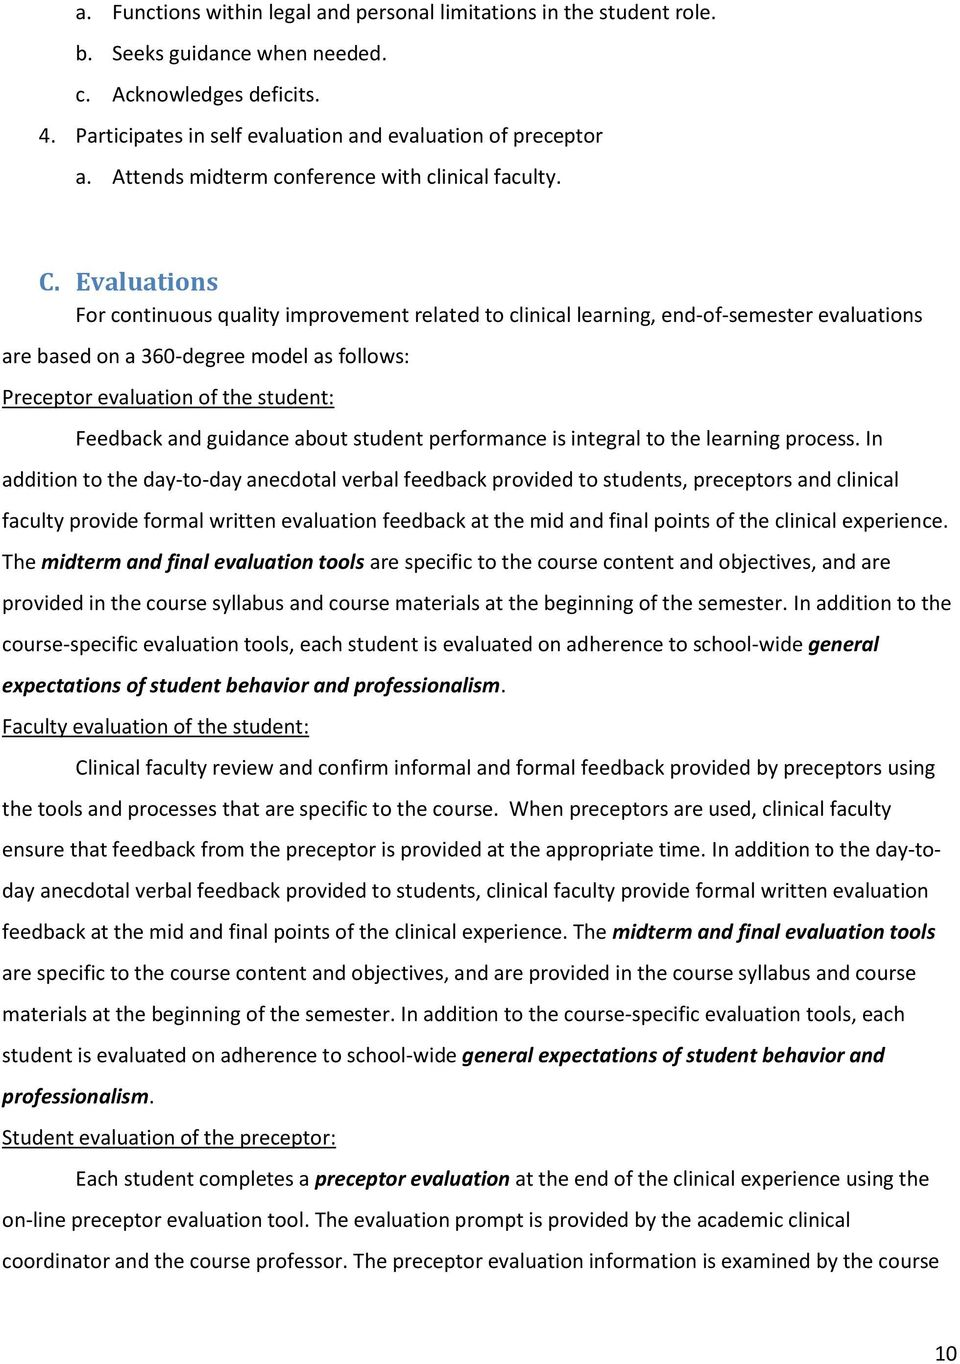 Evaluations For continuous quality improvement related to clinical learning, end-of-semester evaluations are based on a 360-degree model as follows: Preceptor evaluation of the student: Feedback and